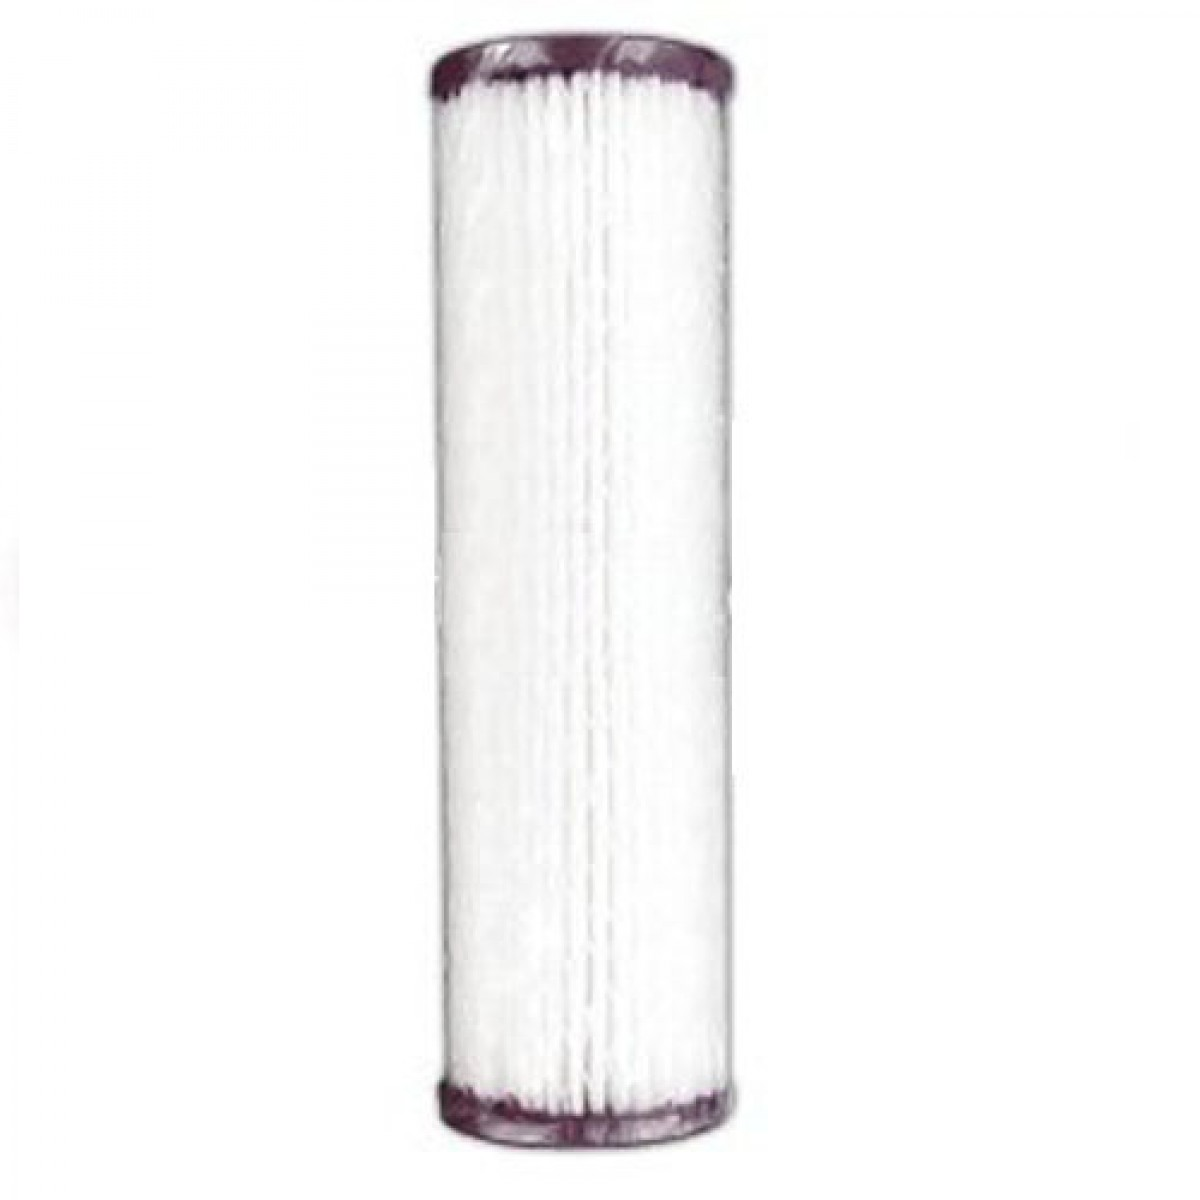 Harmsco Pp S 1 Replacement Filter Cartridge